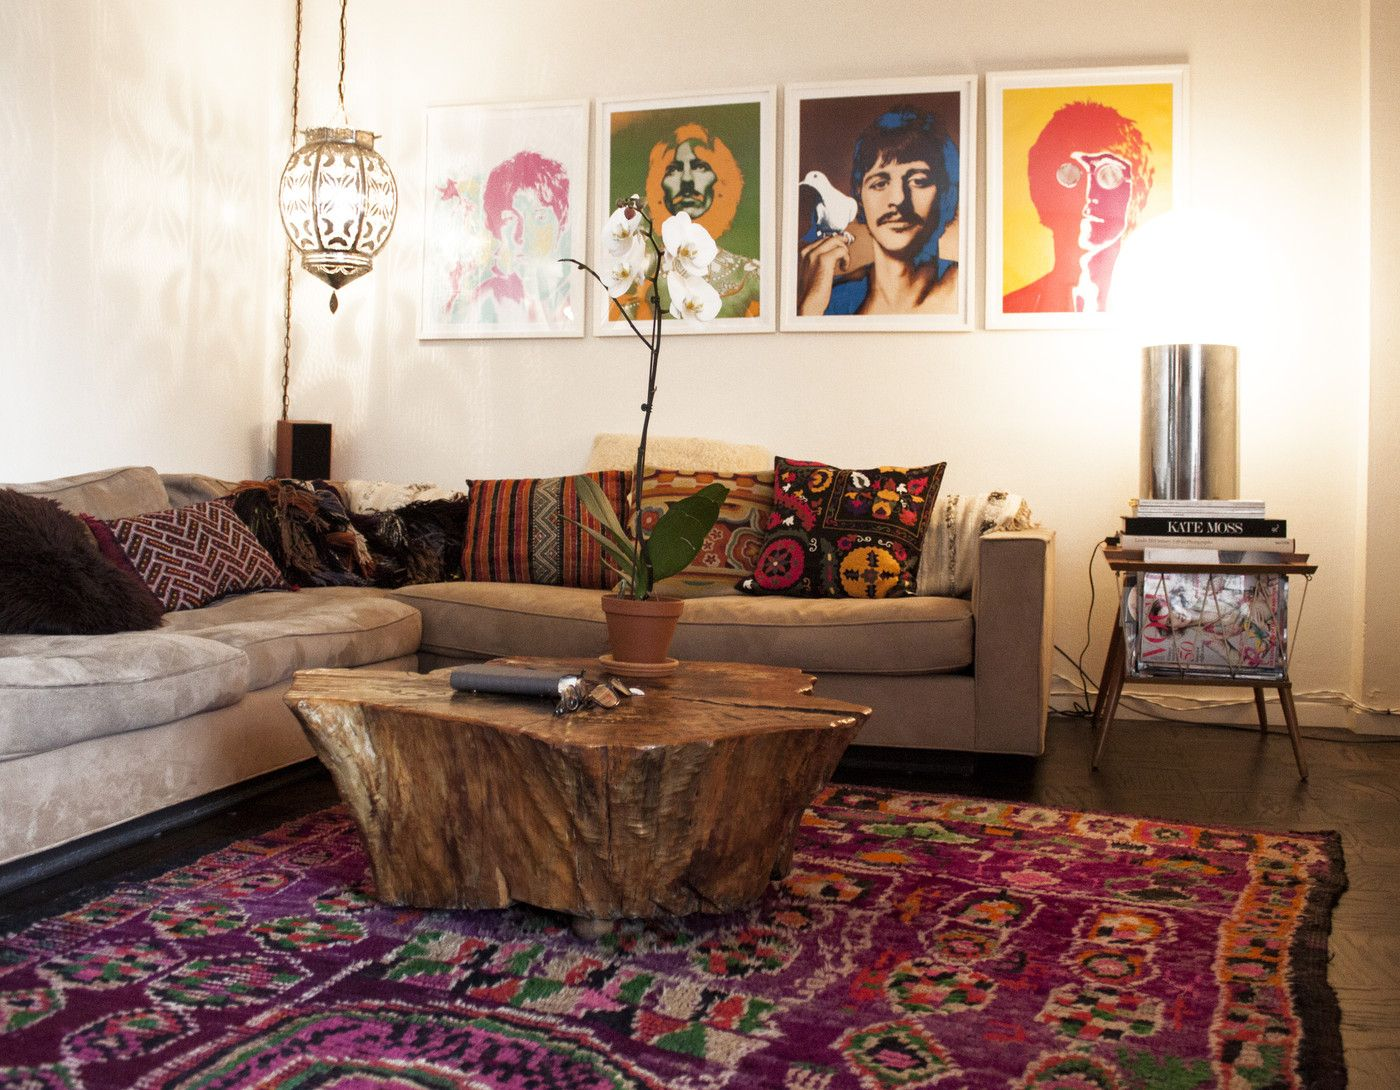 Bohemian coffee table photos eclectic living room bohemian and bohemian coffee table photos geotapseo Gallery